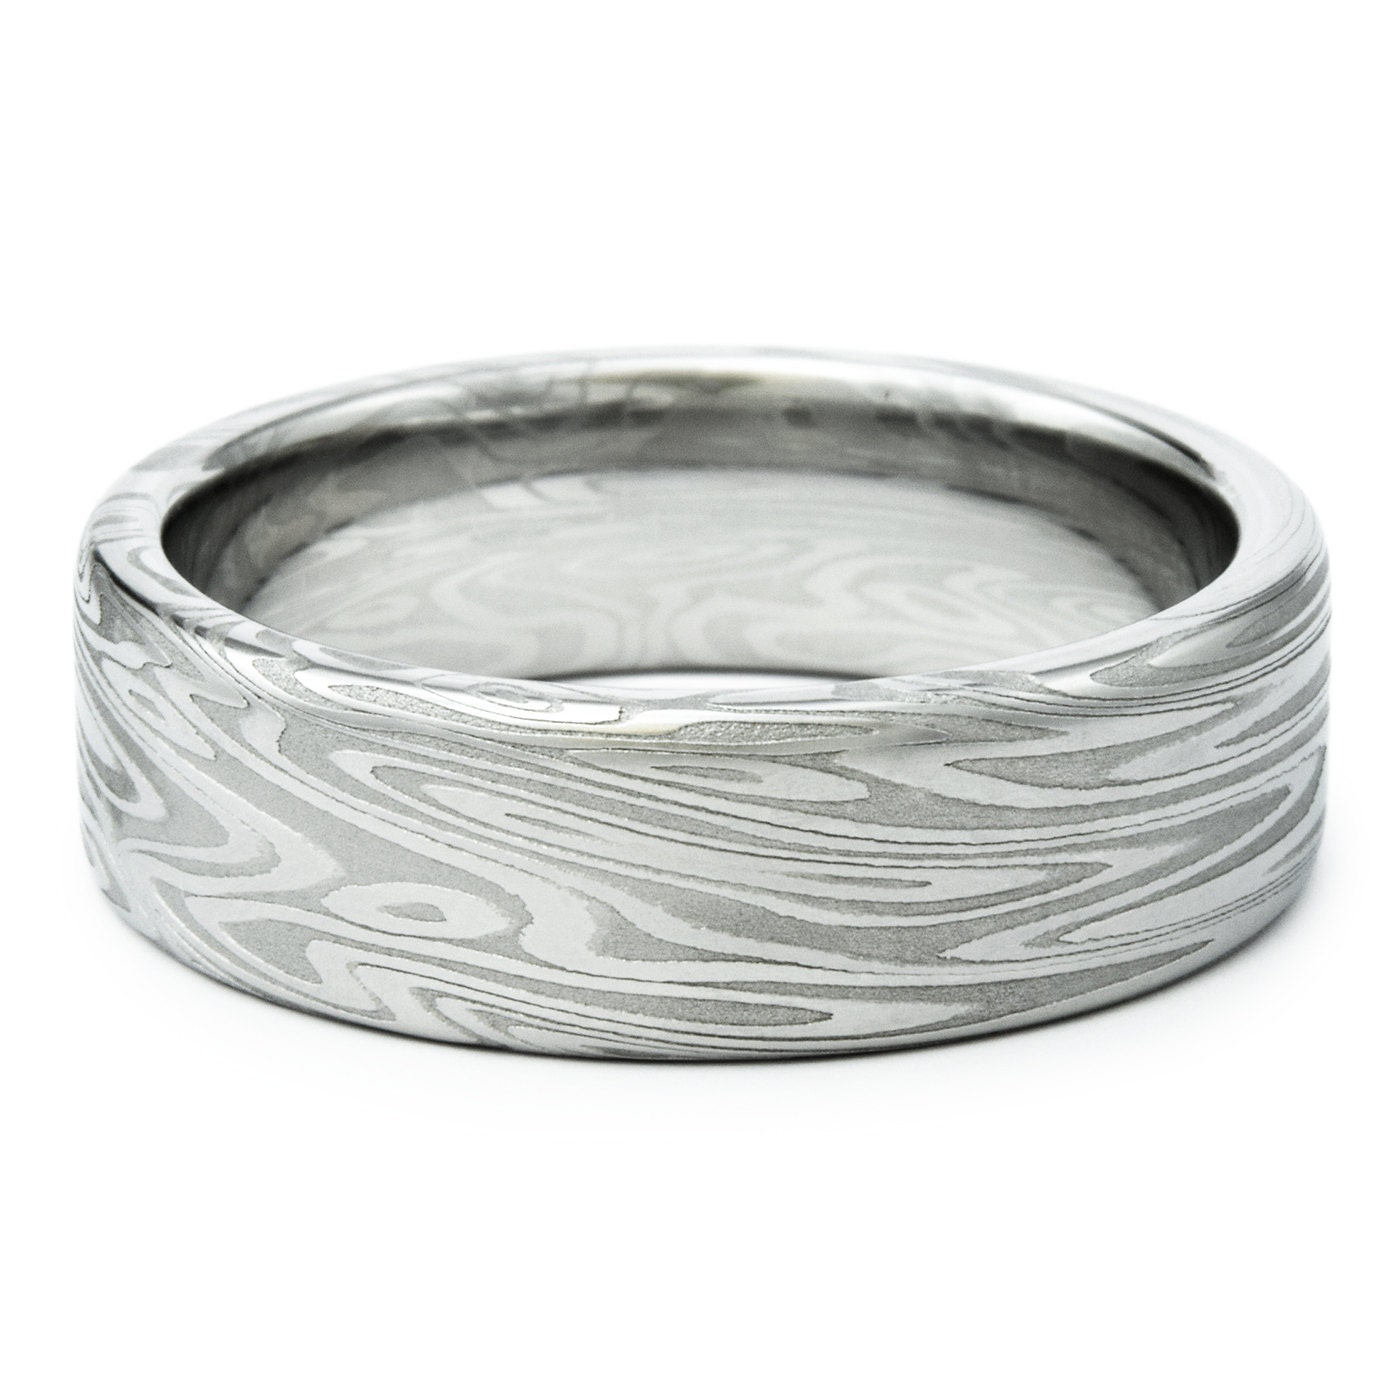 Damascus Ring Unique Men's Wedding Band Twisted Wood Grain